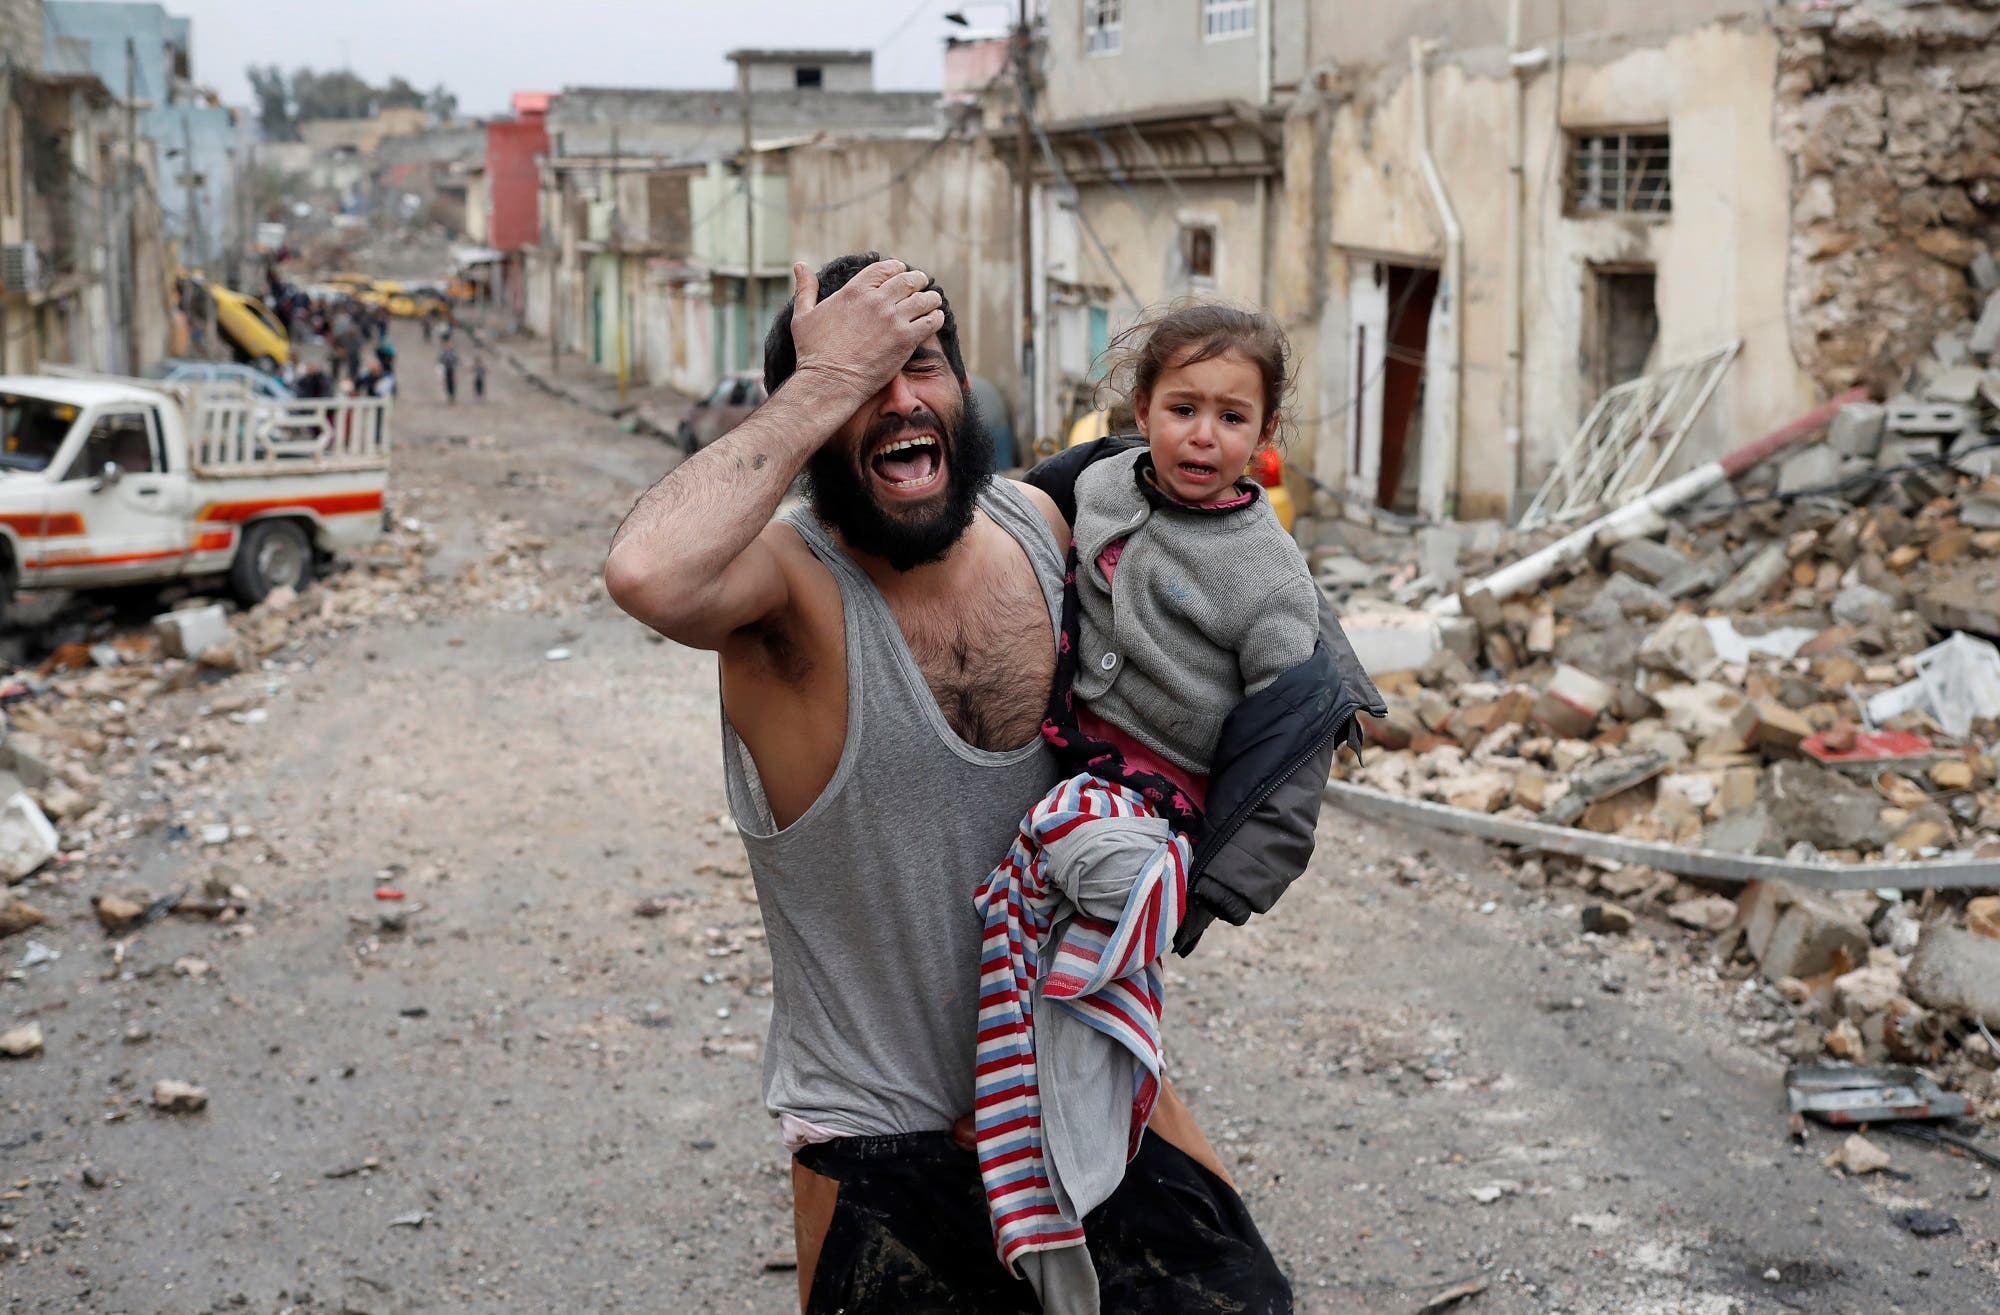 A man cries while he carries his daughter as he walks from Islamic State controlled part of Mosul towards Iraqi special forces soldiers during a battle in Mosul, Iraq, March 4, 2017. (Reuters)